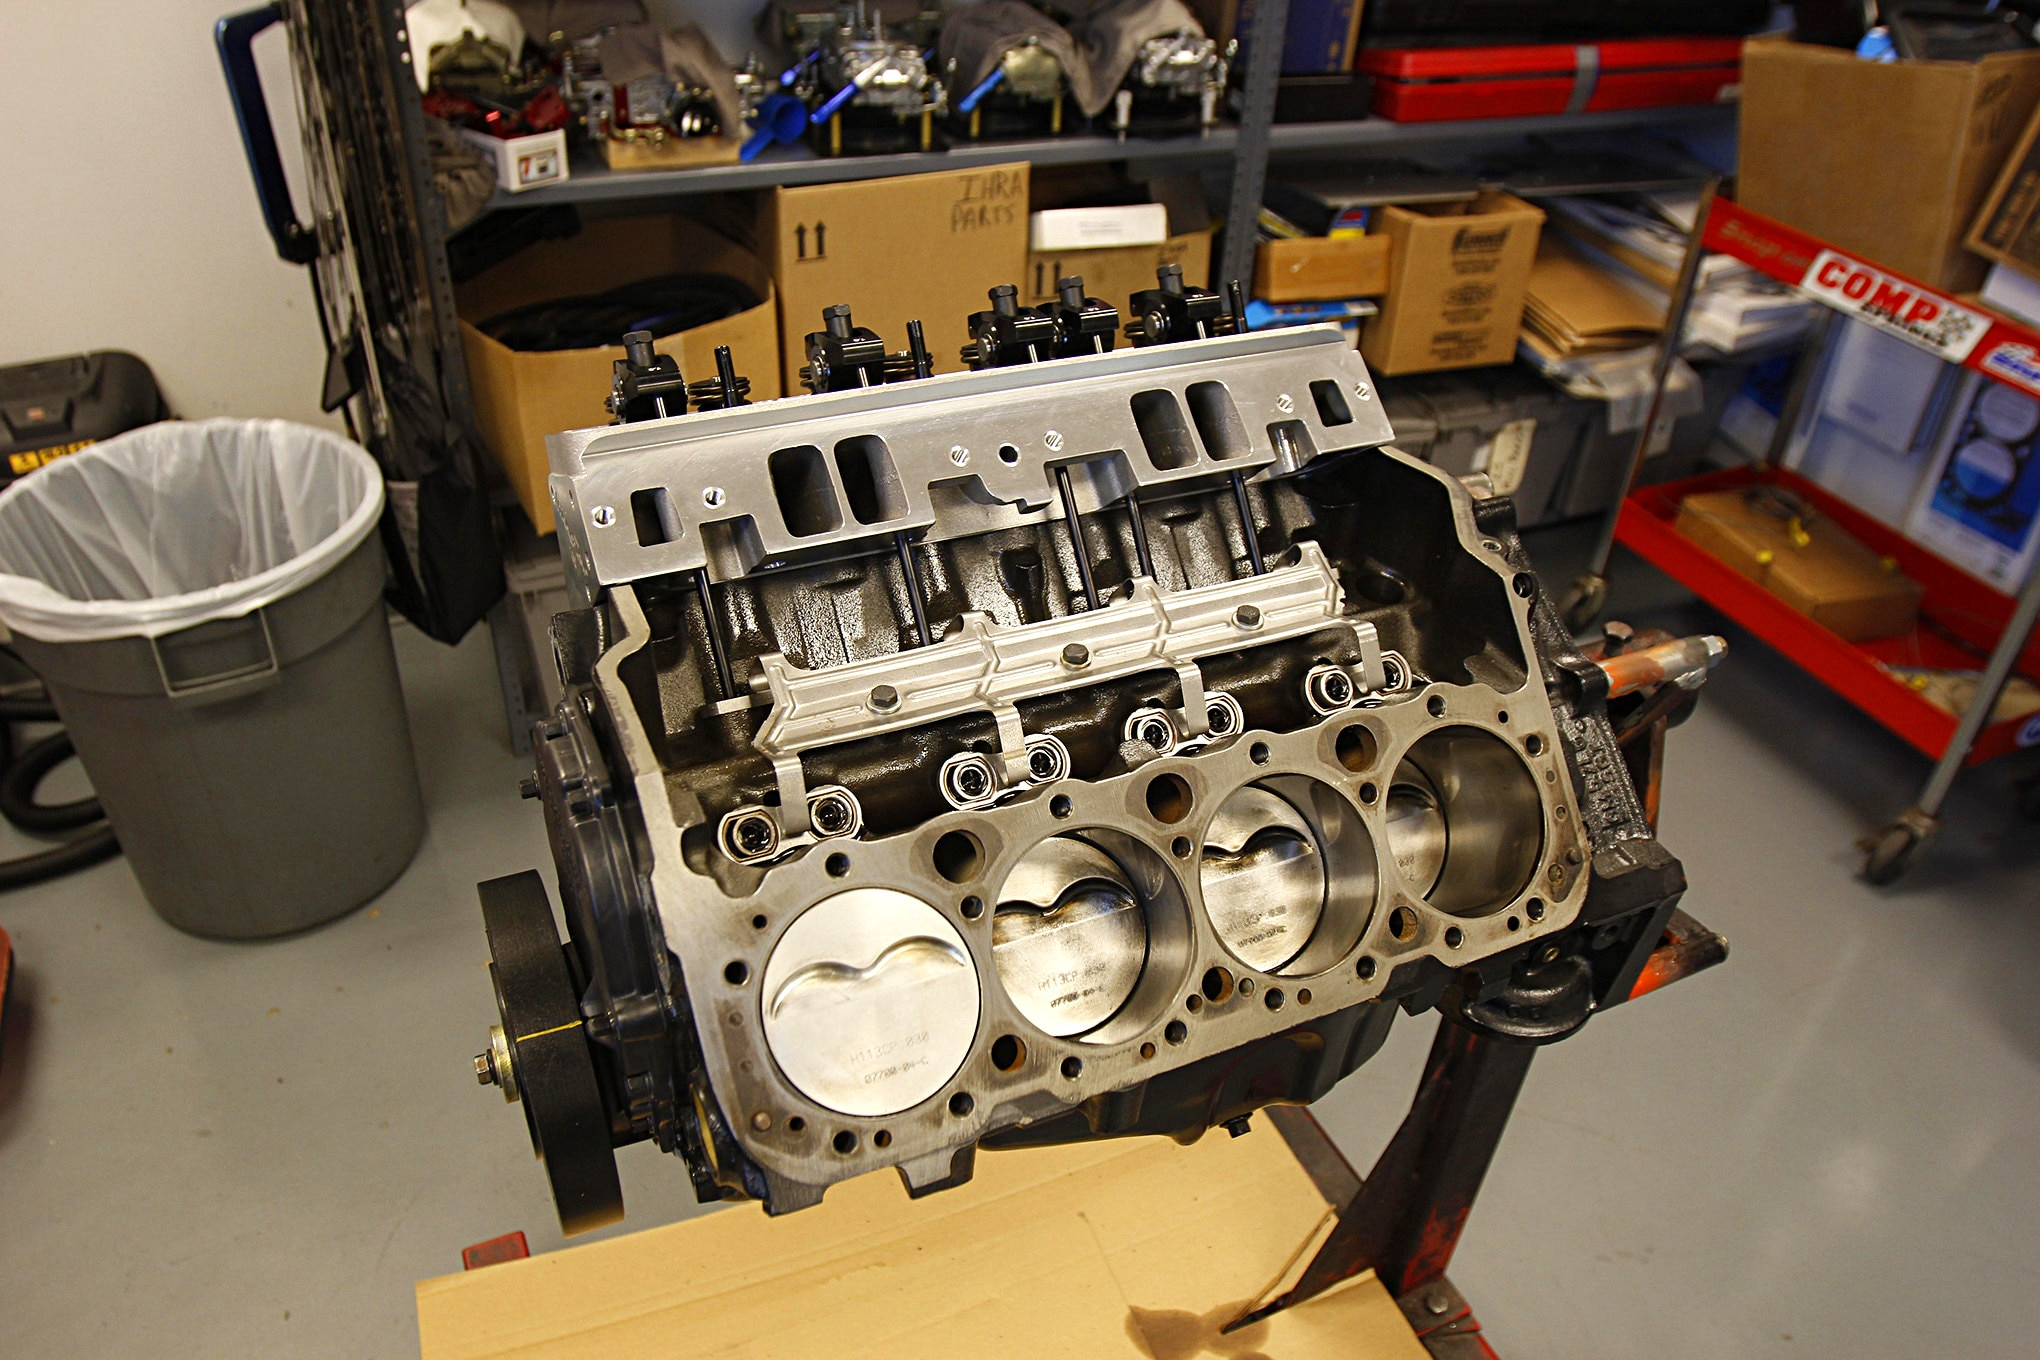 Our new 350 was built with a Scat and Sealed Power rotating assembly in a Vortec 350 engine block. This engine only had a little dyno time on it and was never installed in a car.